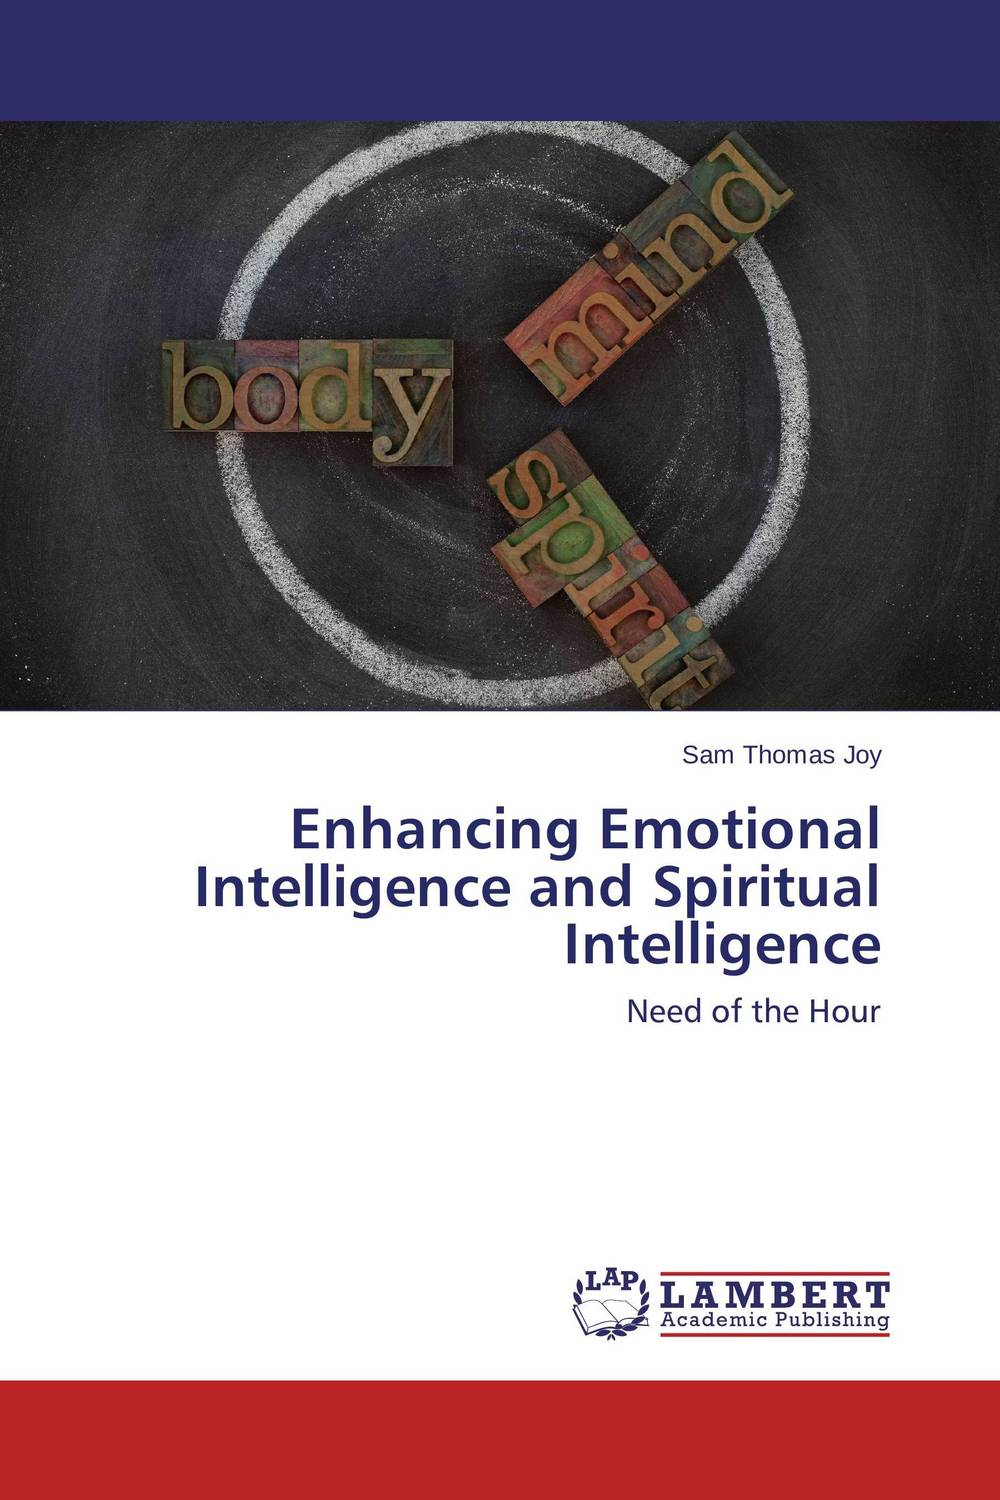 Enhancing Emotional Intelligence and Spiritual Intelligence helina befekadu the nature and effect of emotional violence